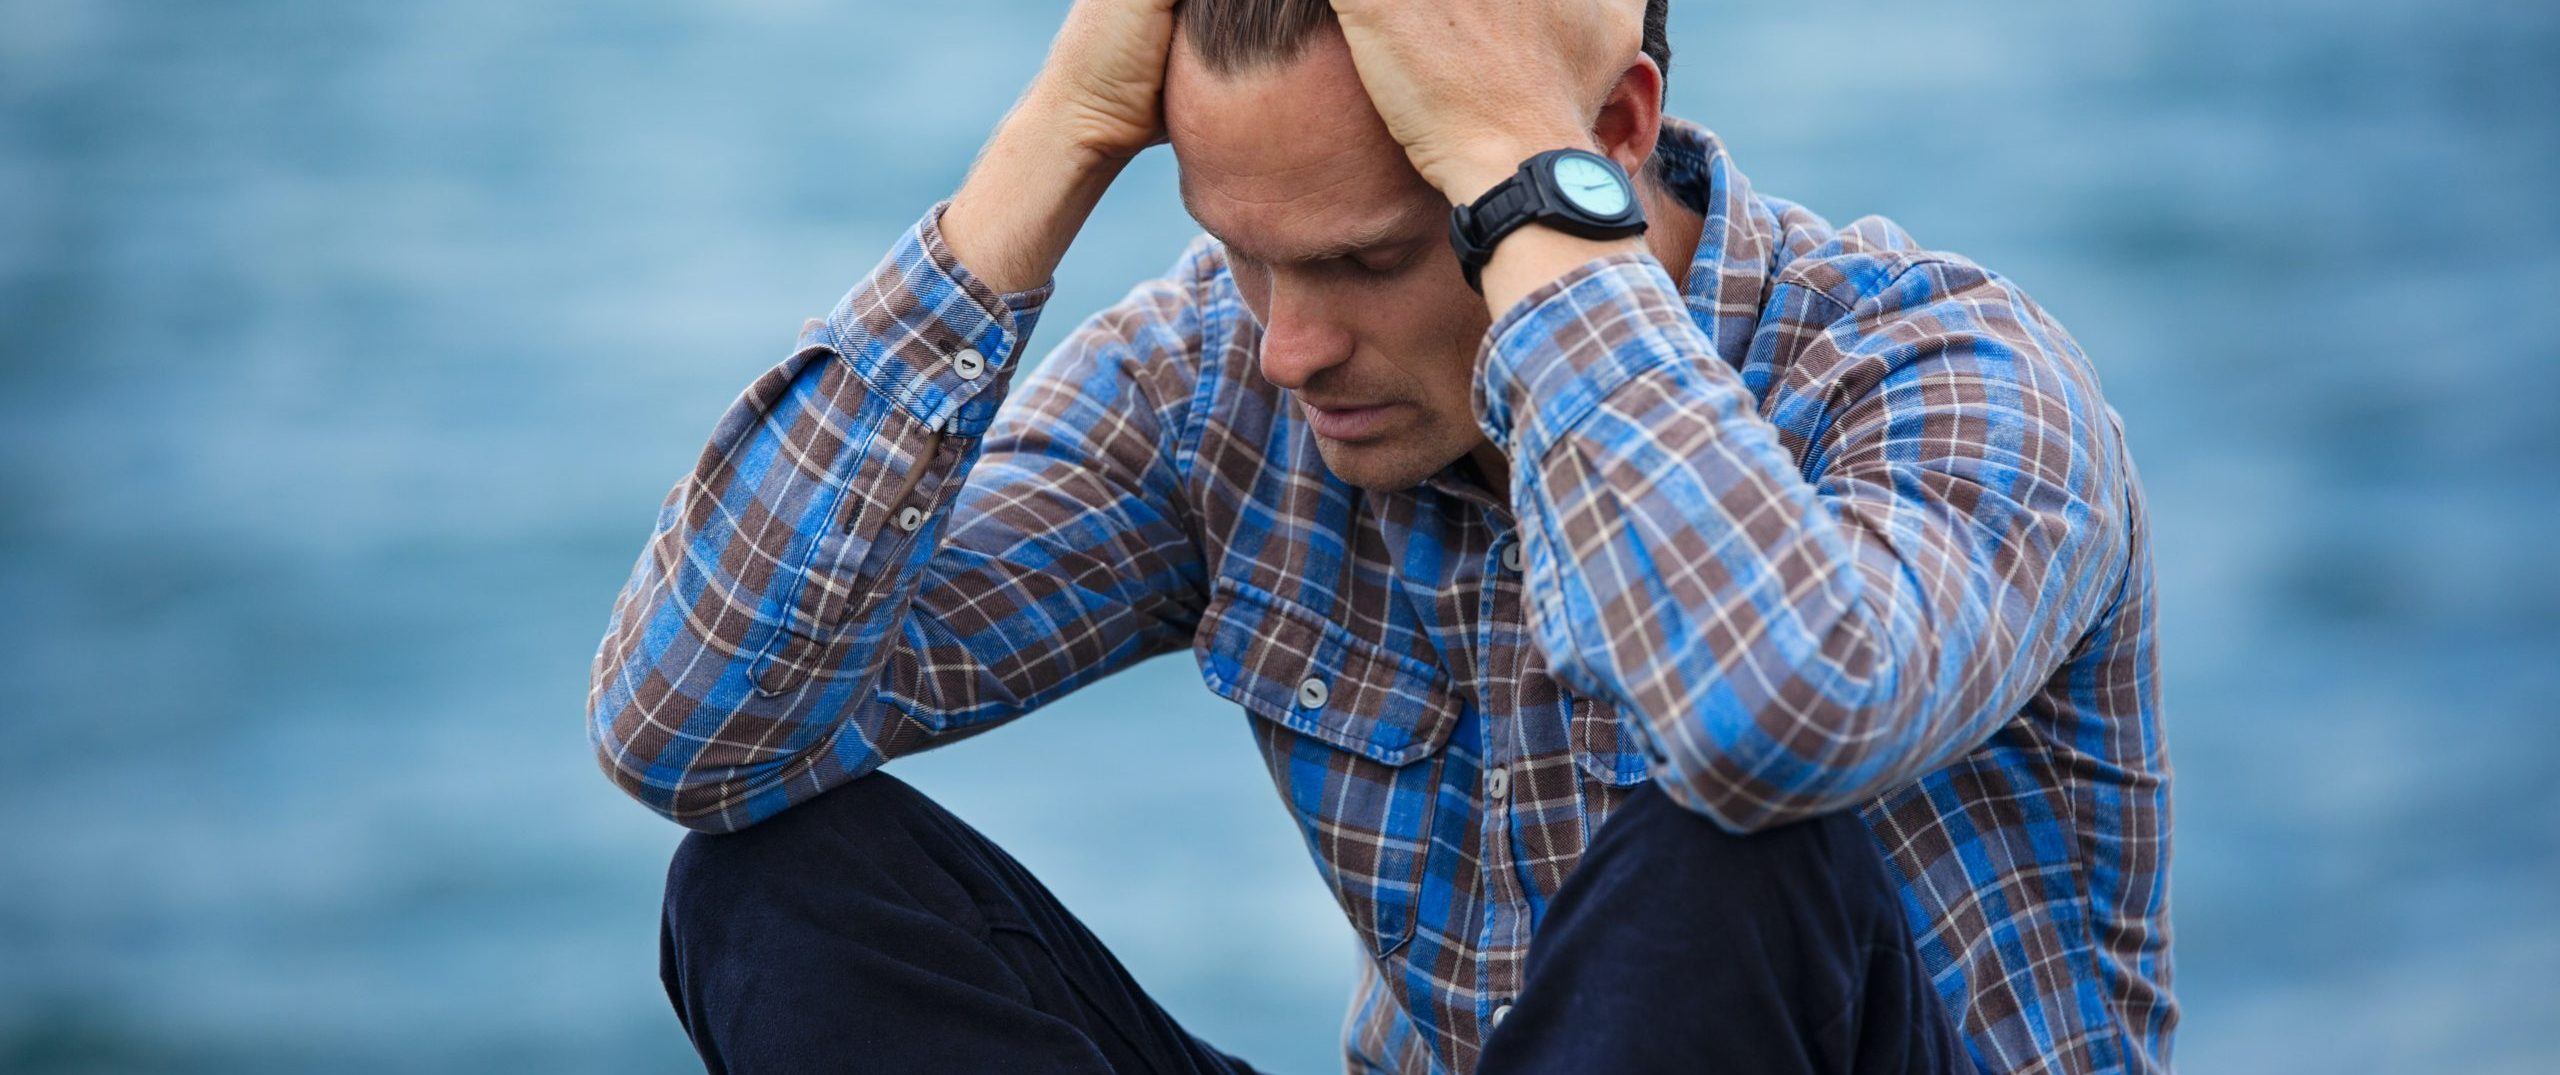 man-in-blue-and-brown-plaid-dress-shirt-touching-his-hair-897817